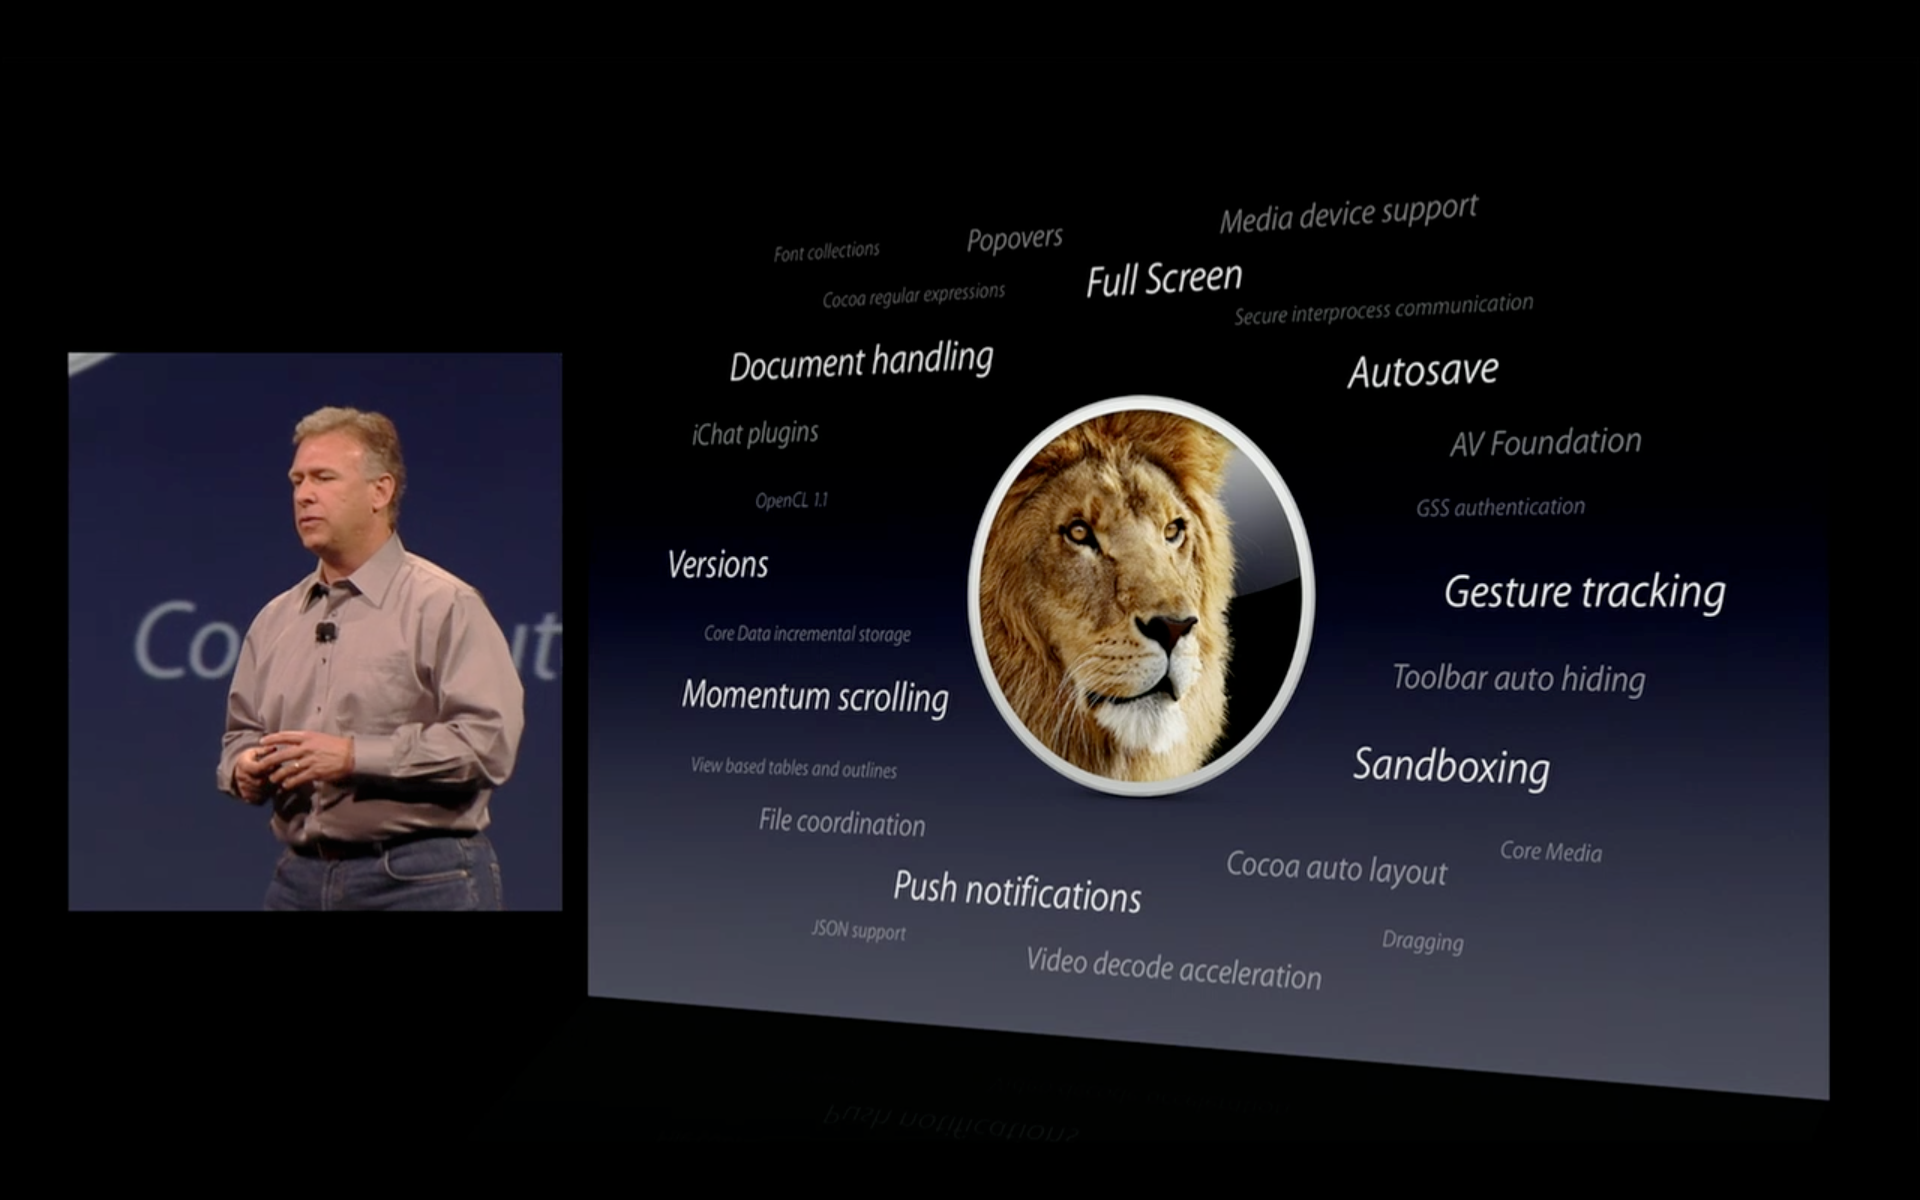 Phil Schiller introducing new developer features in Mac OS X Lion at WWDC 2011